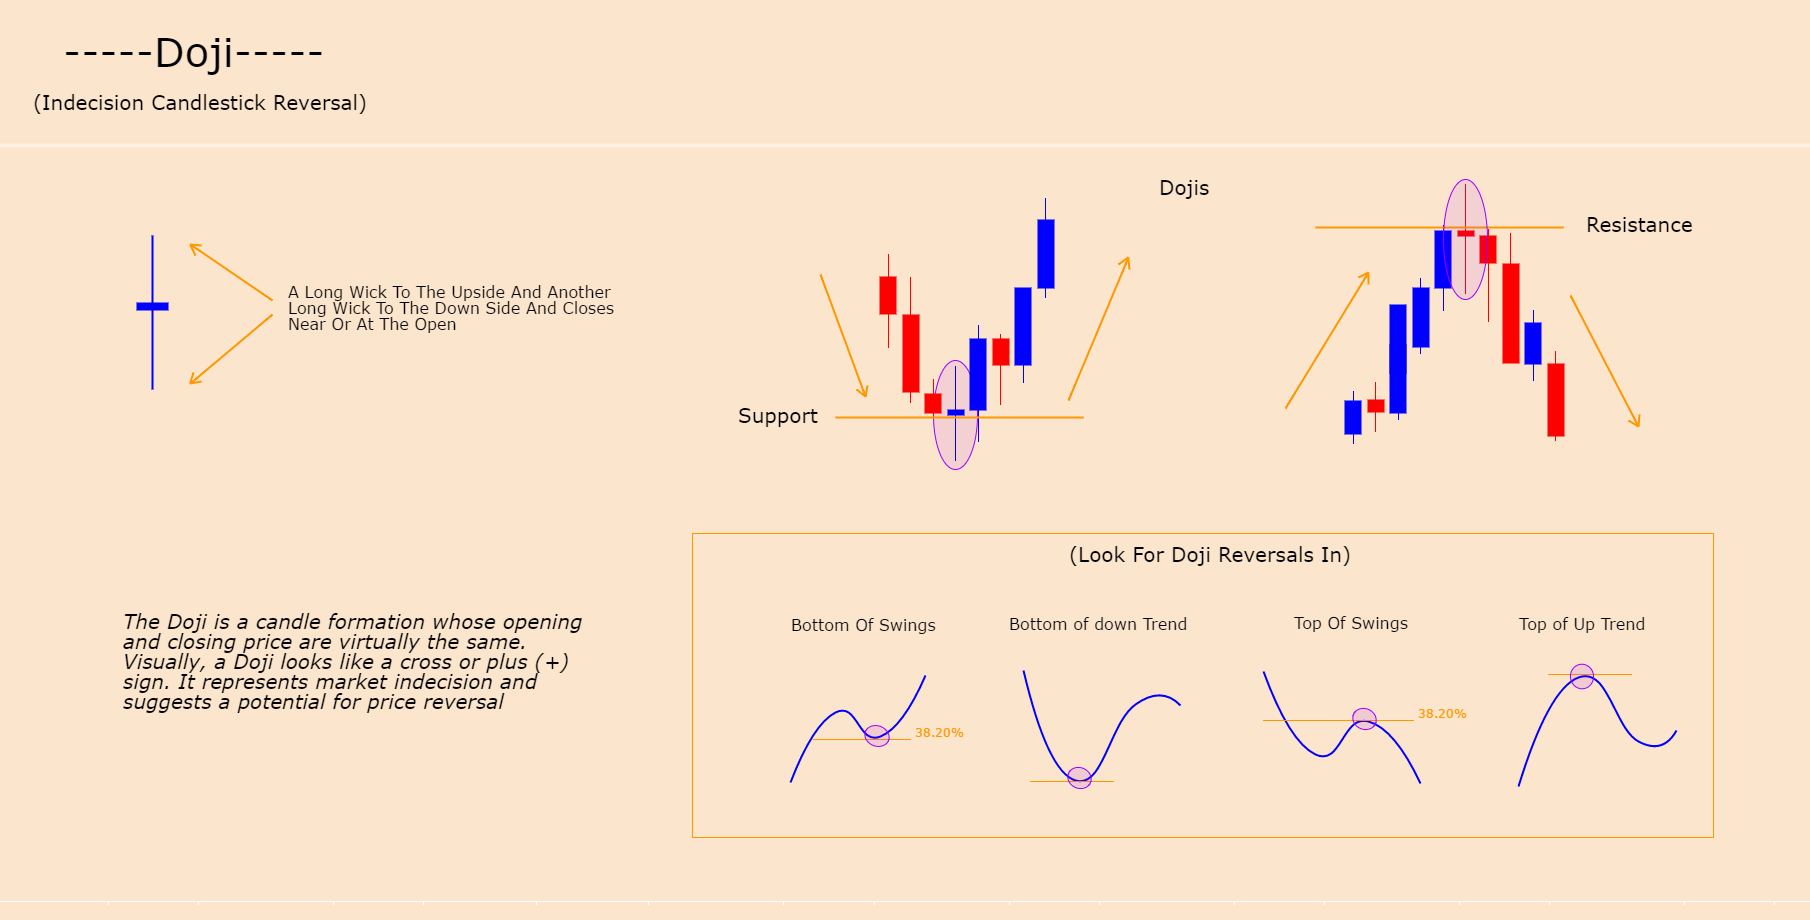 DOJI - CANDLE FORMATION (TREND INDECISON, REVERSAL)